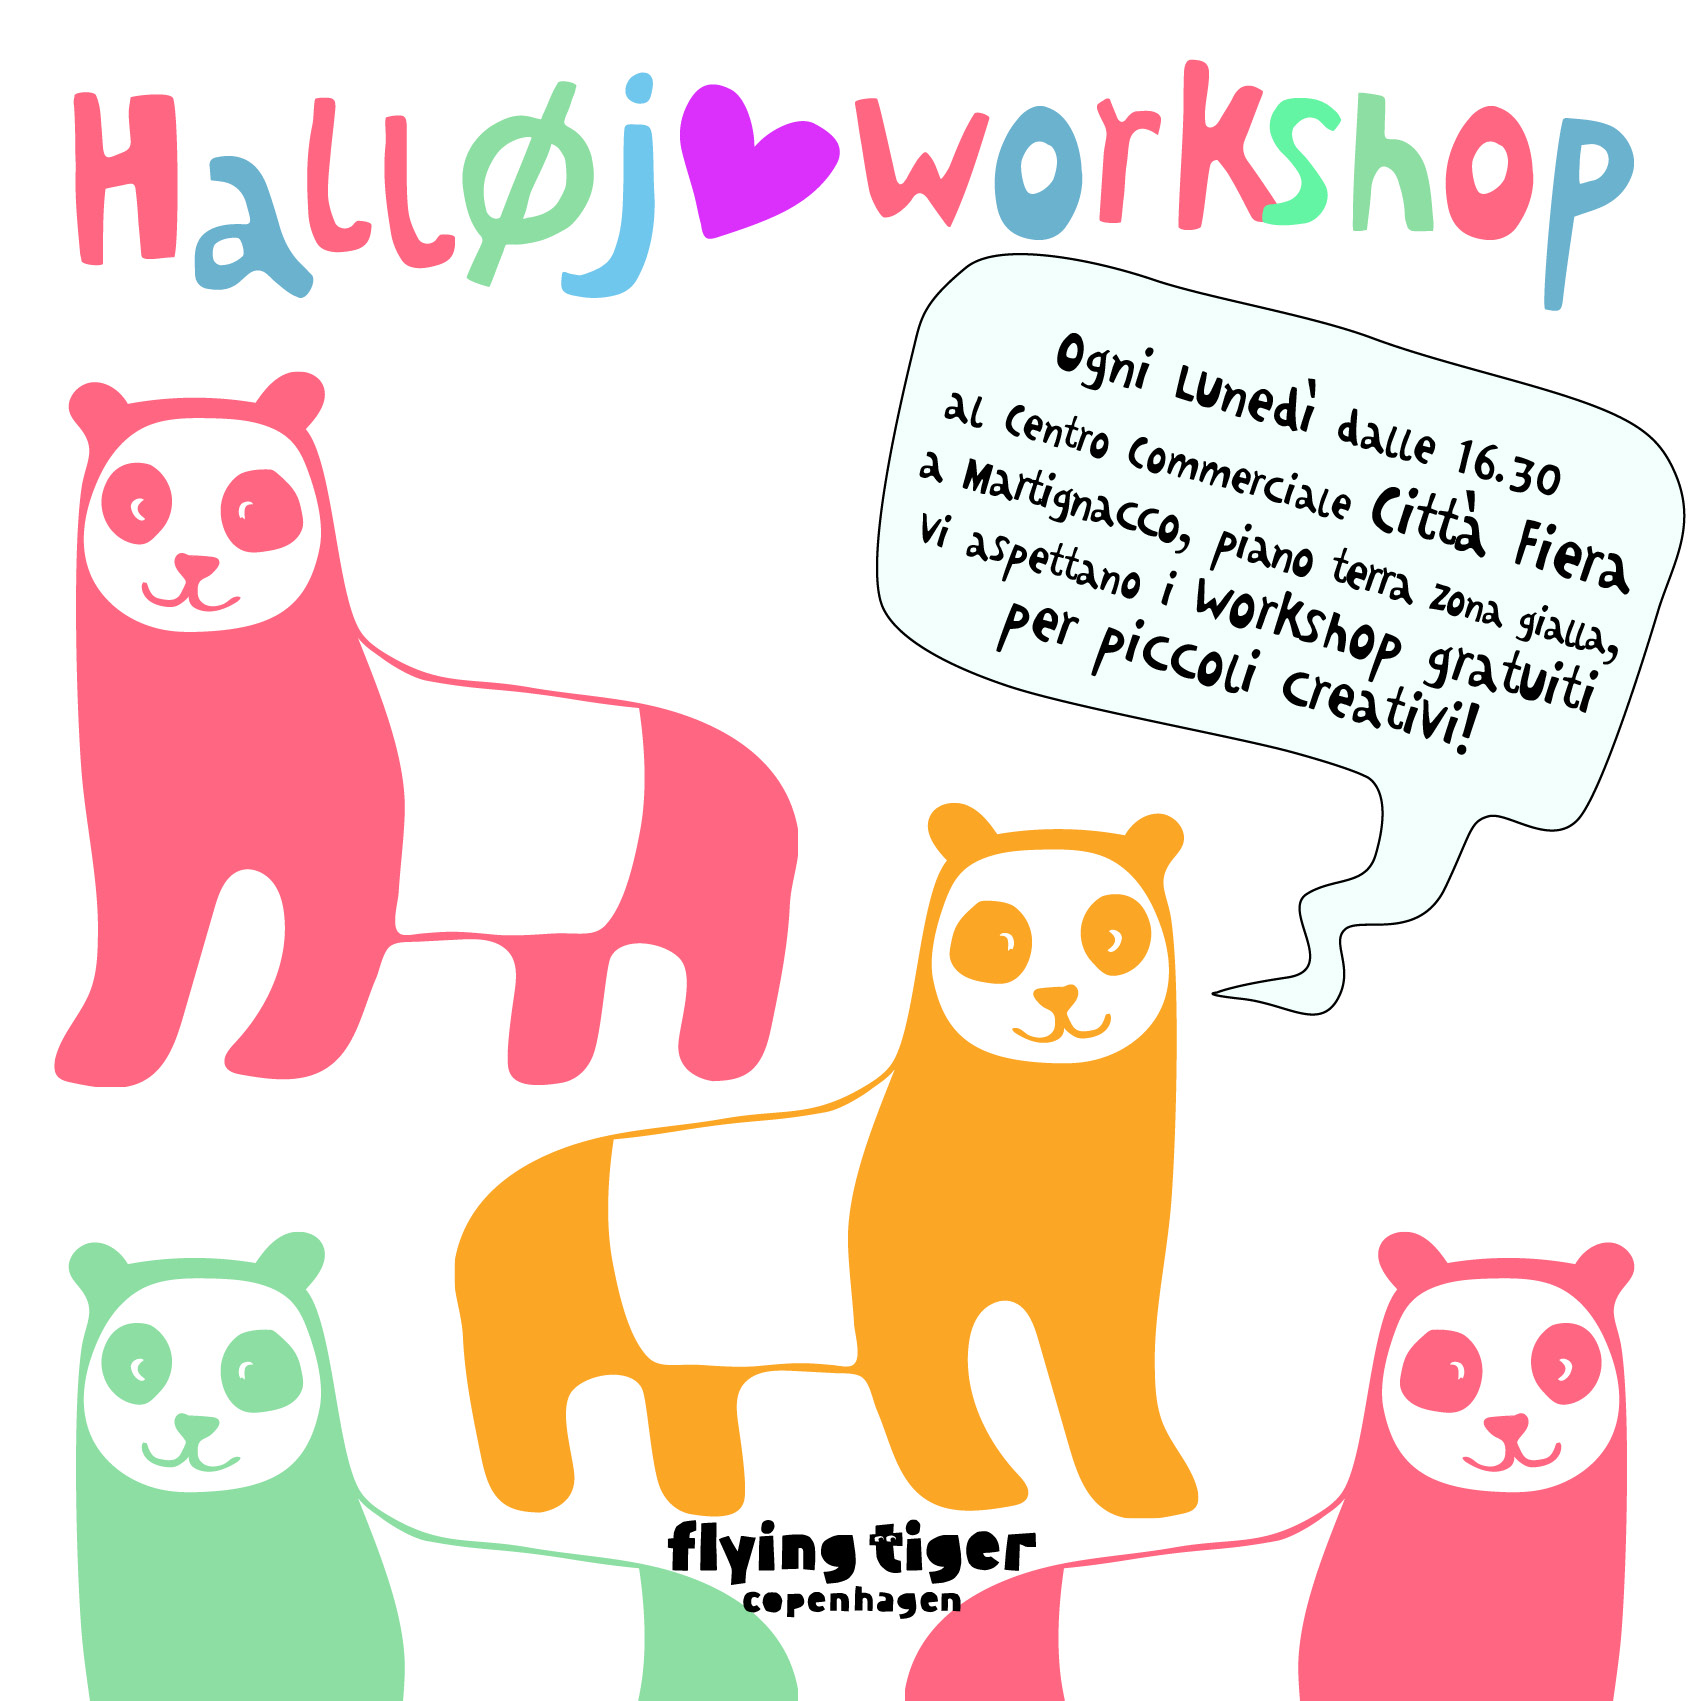 Workshop creativi da Flying Tiger Copenaghen